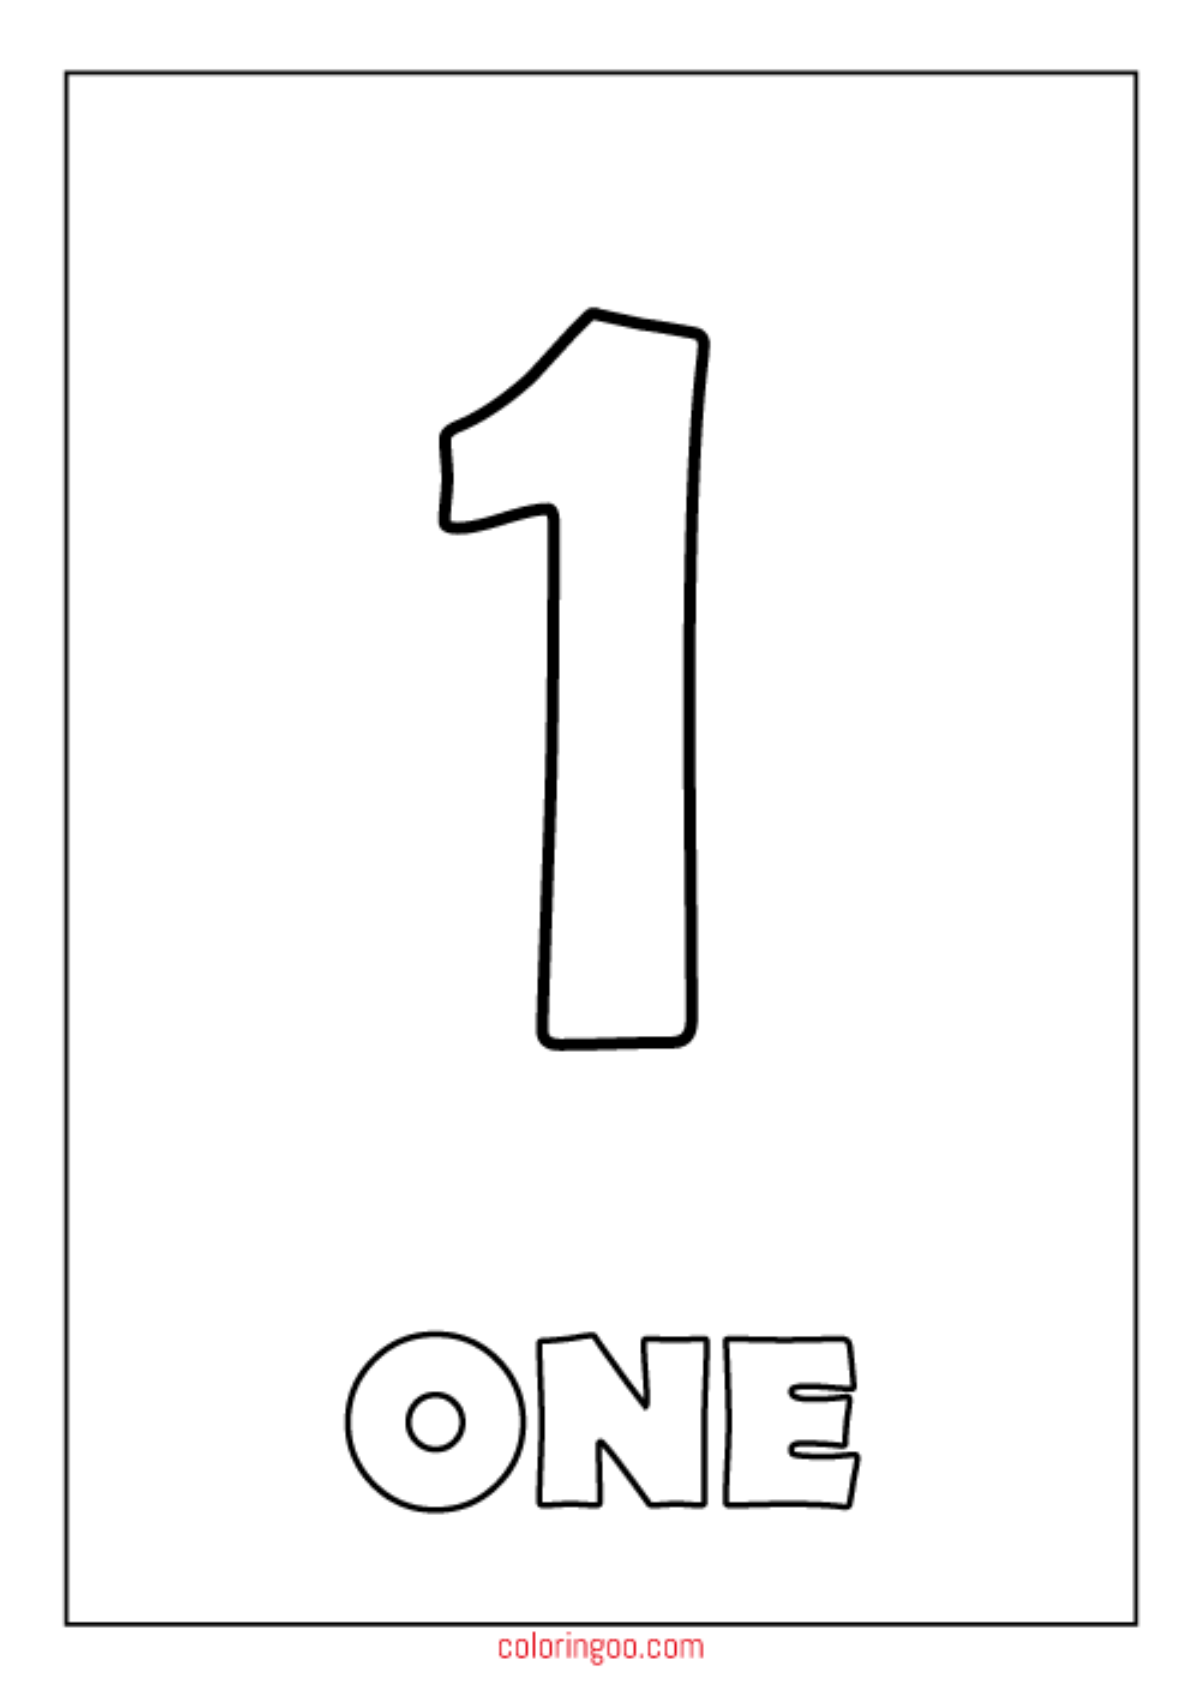 Number 1 Coloring Page : number, coloring, Printable, Number, (One), Coloring, (PDF)